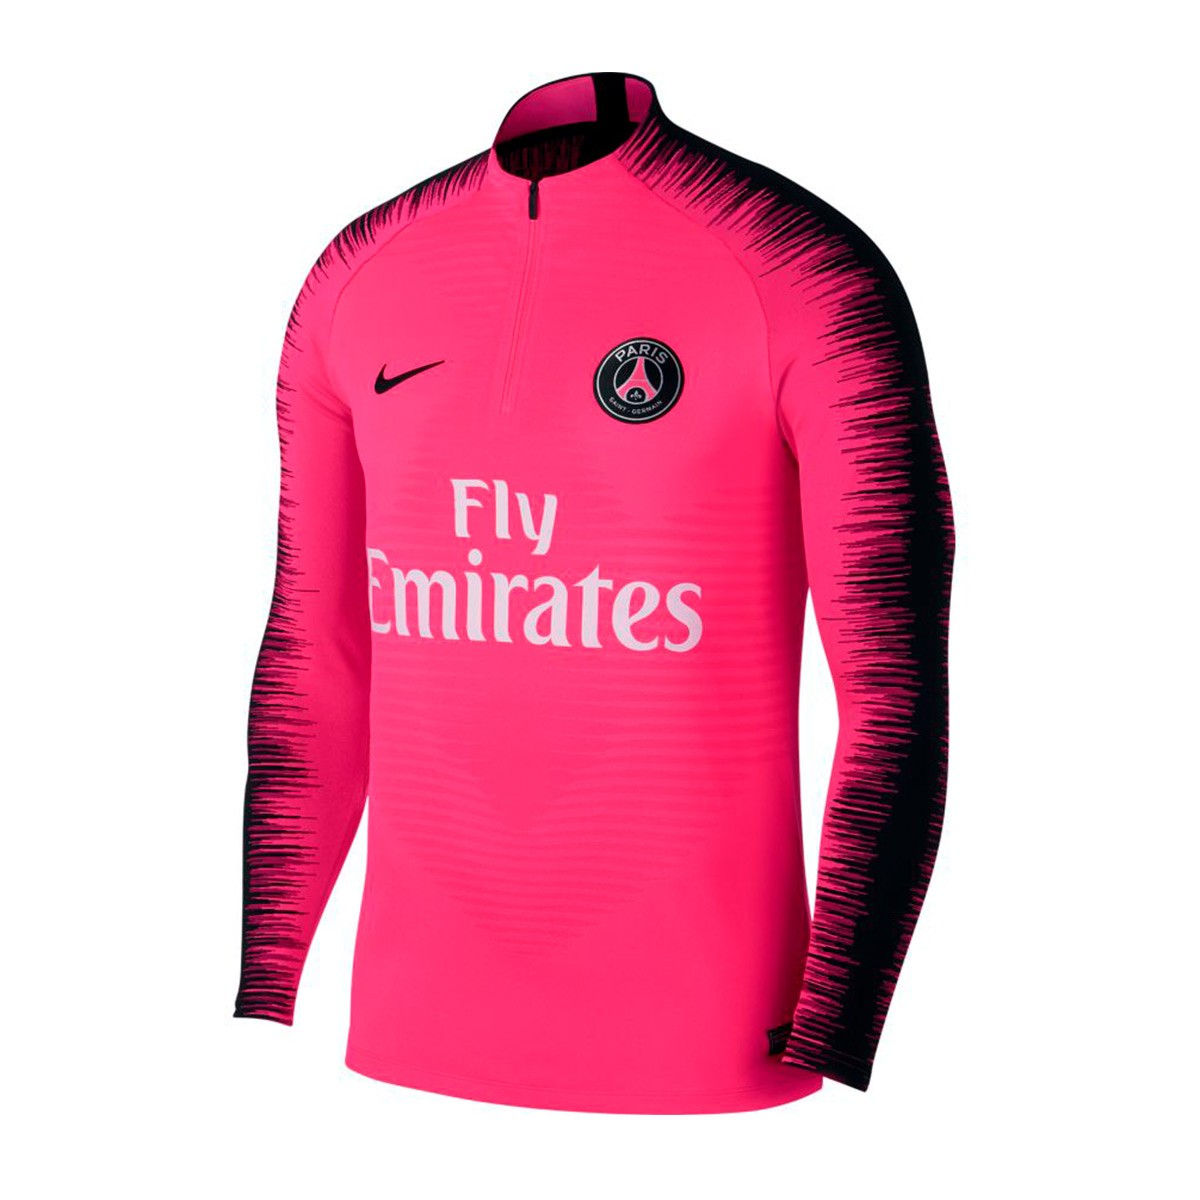 Sweatshirt Nike VaporKnit Strike Paris Saint-Germain 2018-2019 Hyper ... 597ae5f5140